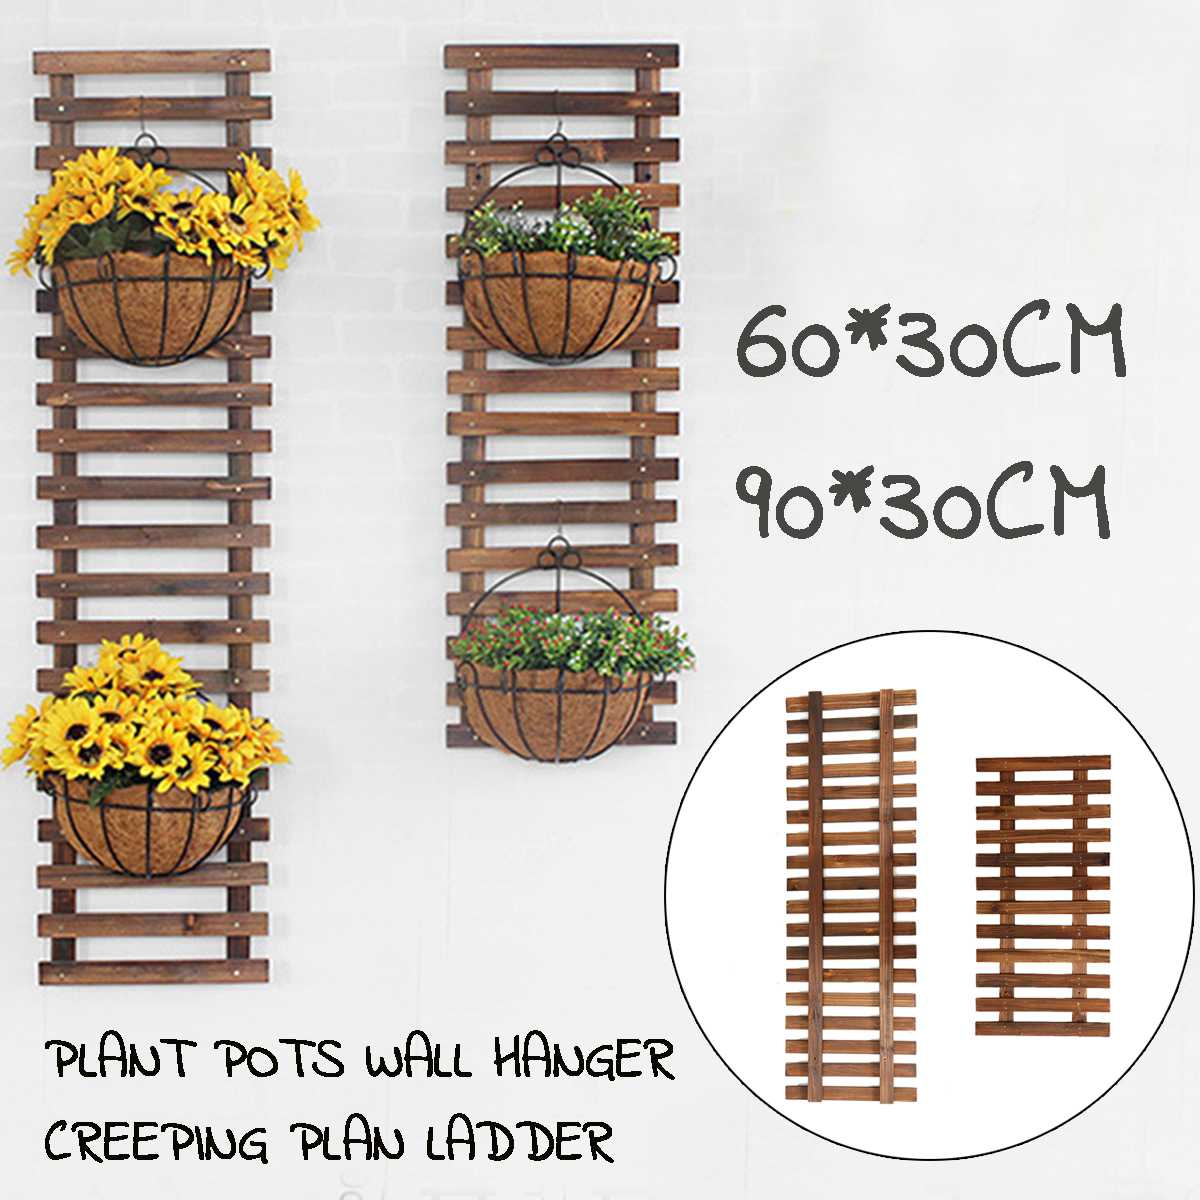 Tools Construction Tools 60cm Flower Plants Clematis Climbing Rack Support Shelf House Plant Growth Scaffold Ladder Building Garden Tool